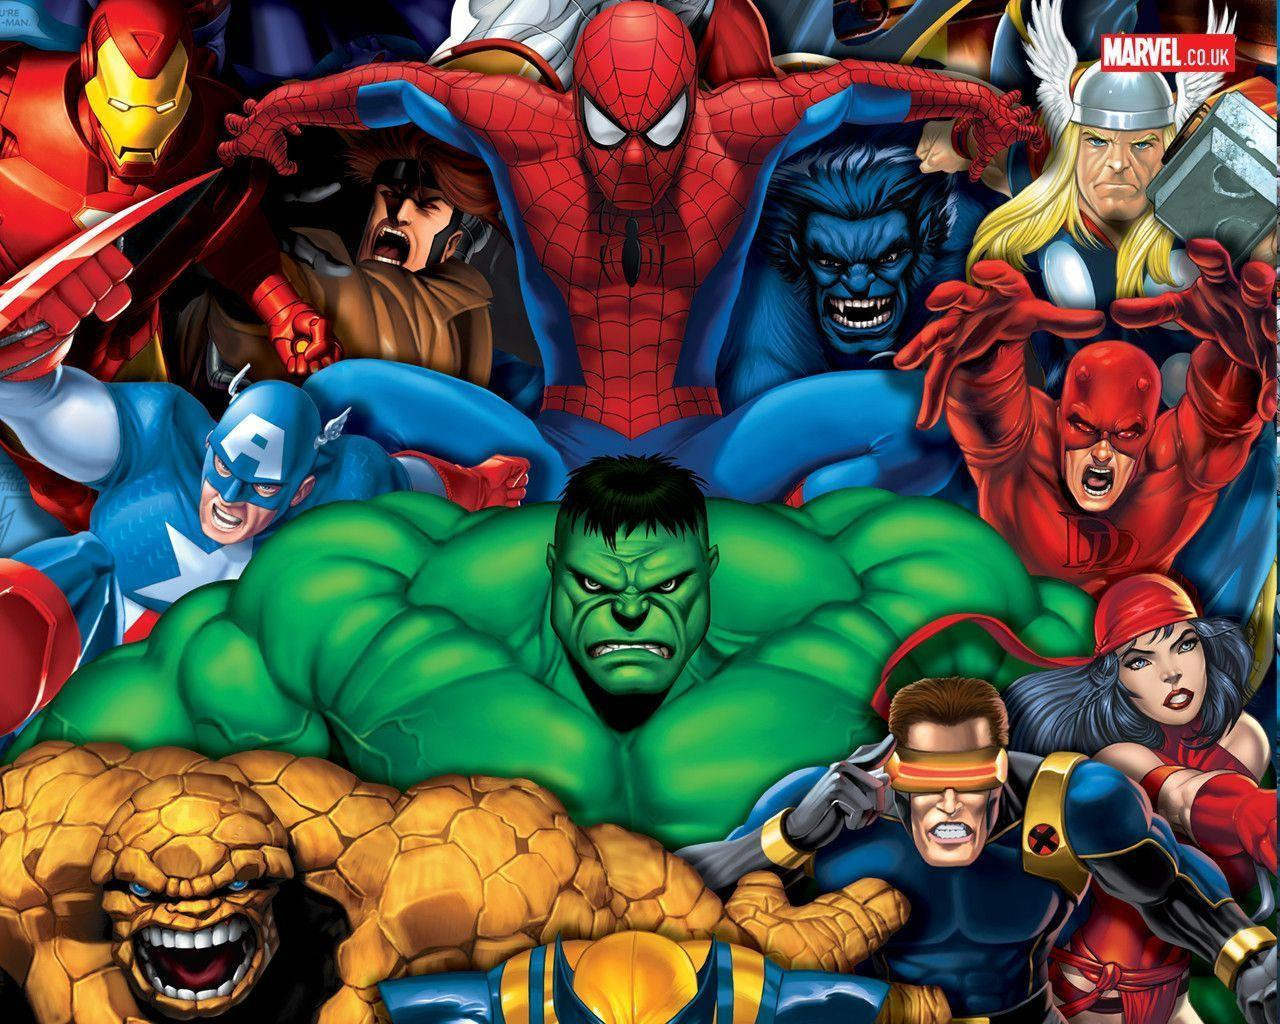 marvel comics wallpaper – 1280×1024 High Definition Wallpaper ...